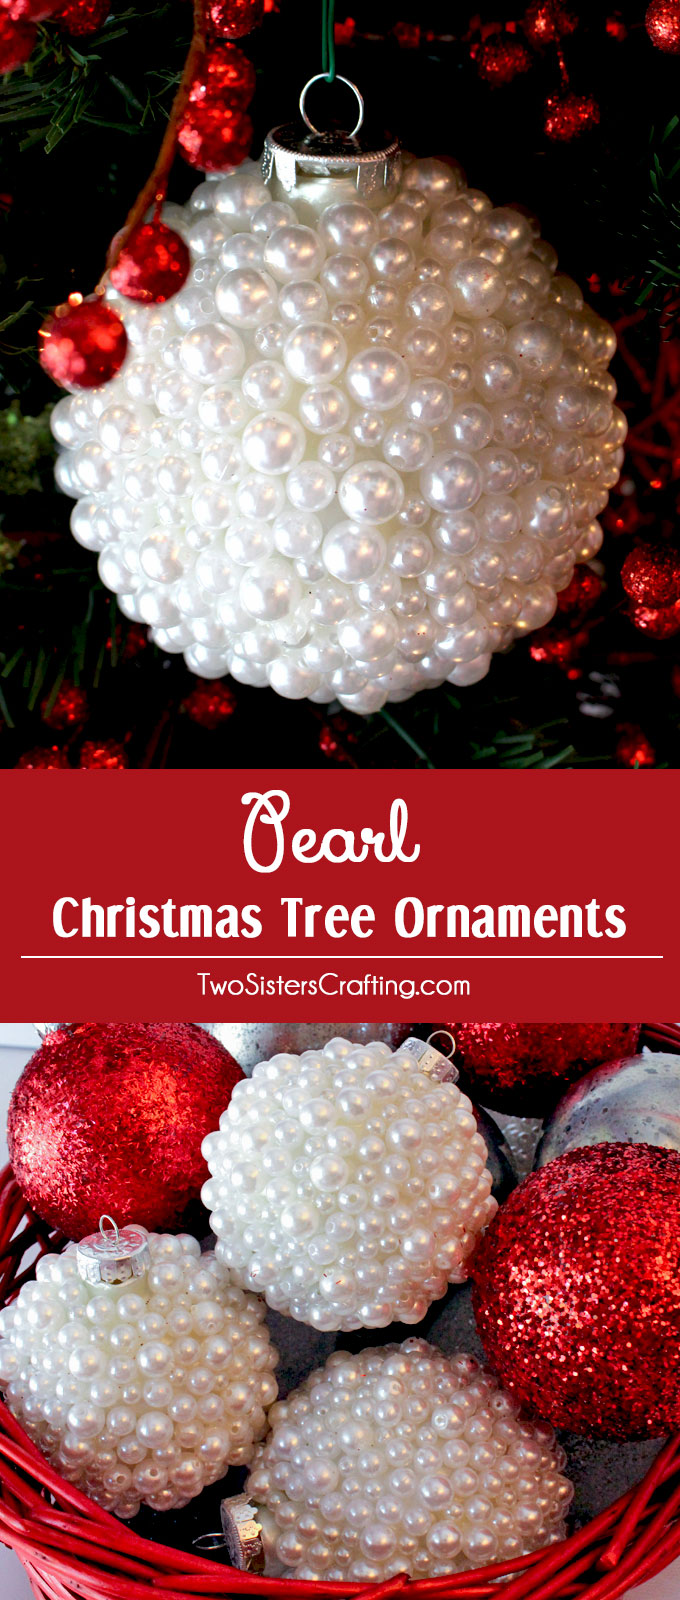 Great Christmas Craft Ideas Part - 41: These Pearl Christmas Tree Ornaments Are A Fun Craft That Results In  Beautifully Unique Christmas Ornaments